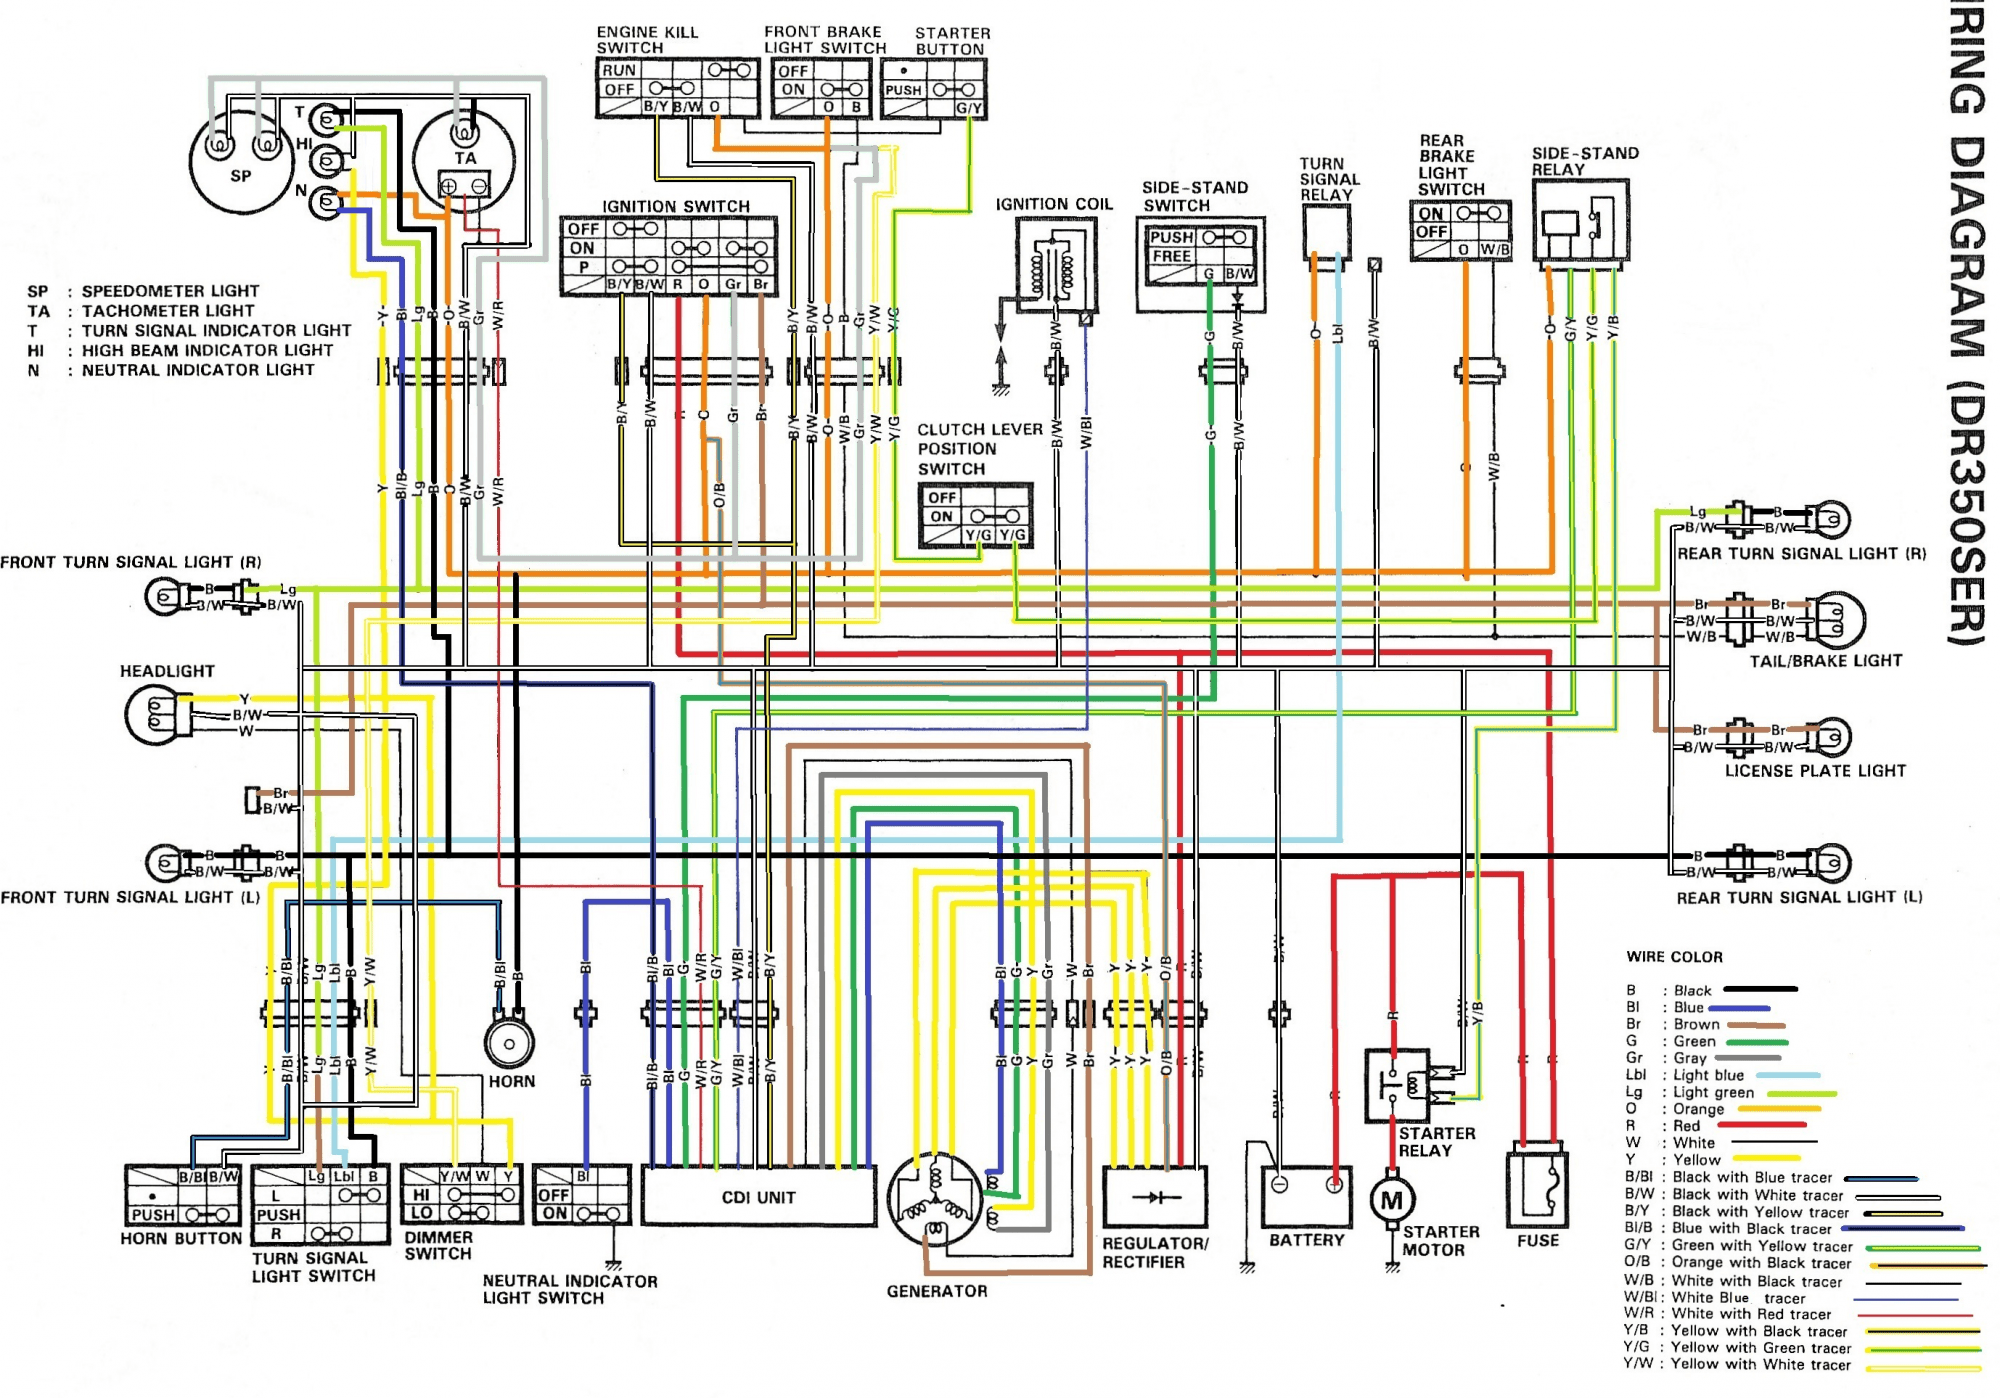 1977 Mgb Wiring Diagram Detailed Schematics 1969 Electrical 1980 Mg Diagrams